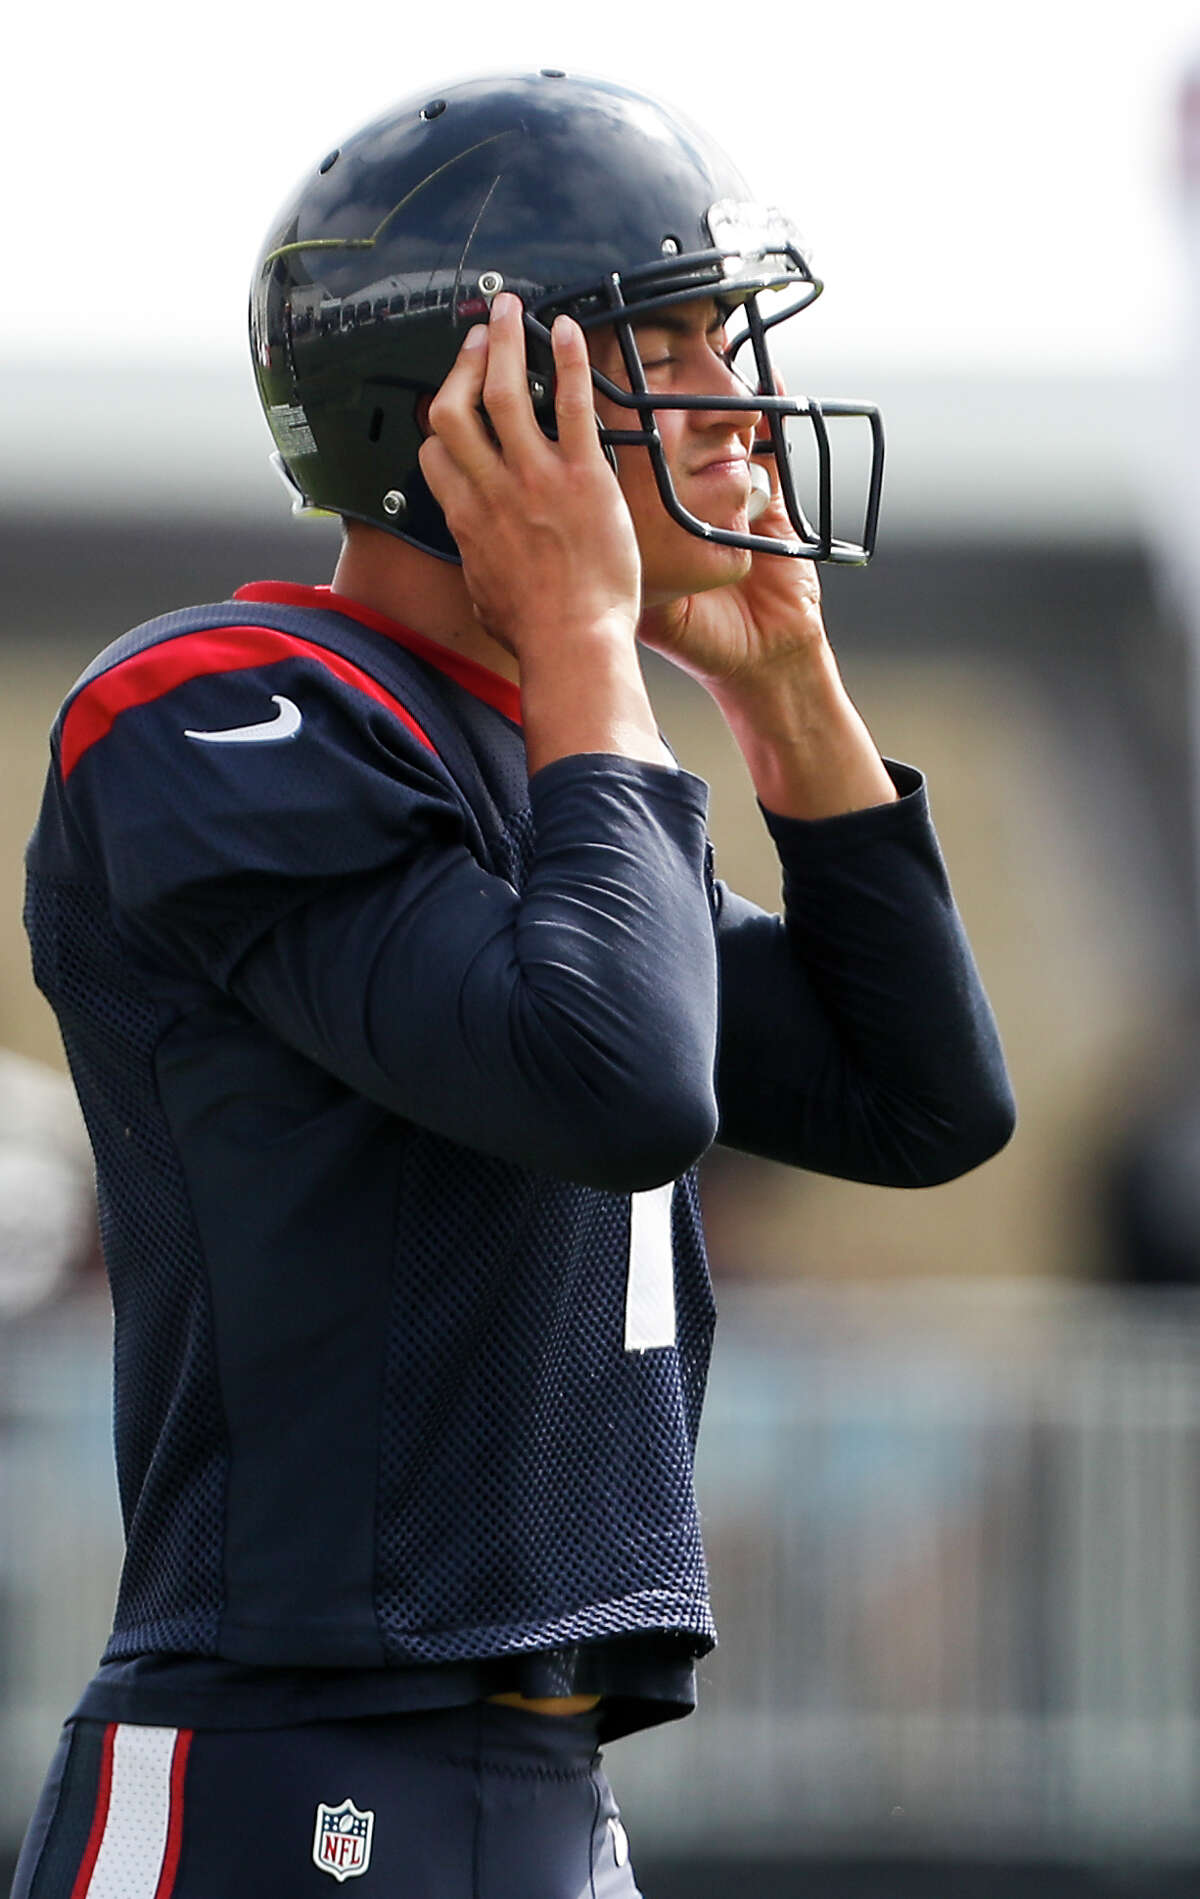 Houston Texans kicker Ka'imi Fairbairn dons his helmet as he walks onto the practice field during training camp at the Greenbrier Sports Performance Center on Saturday, Aug. 4, 2018, in White Sulphur Springs, W.Va.